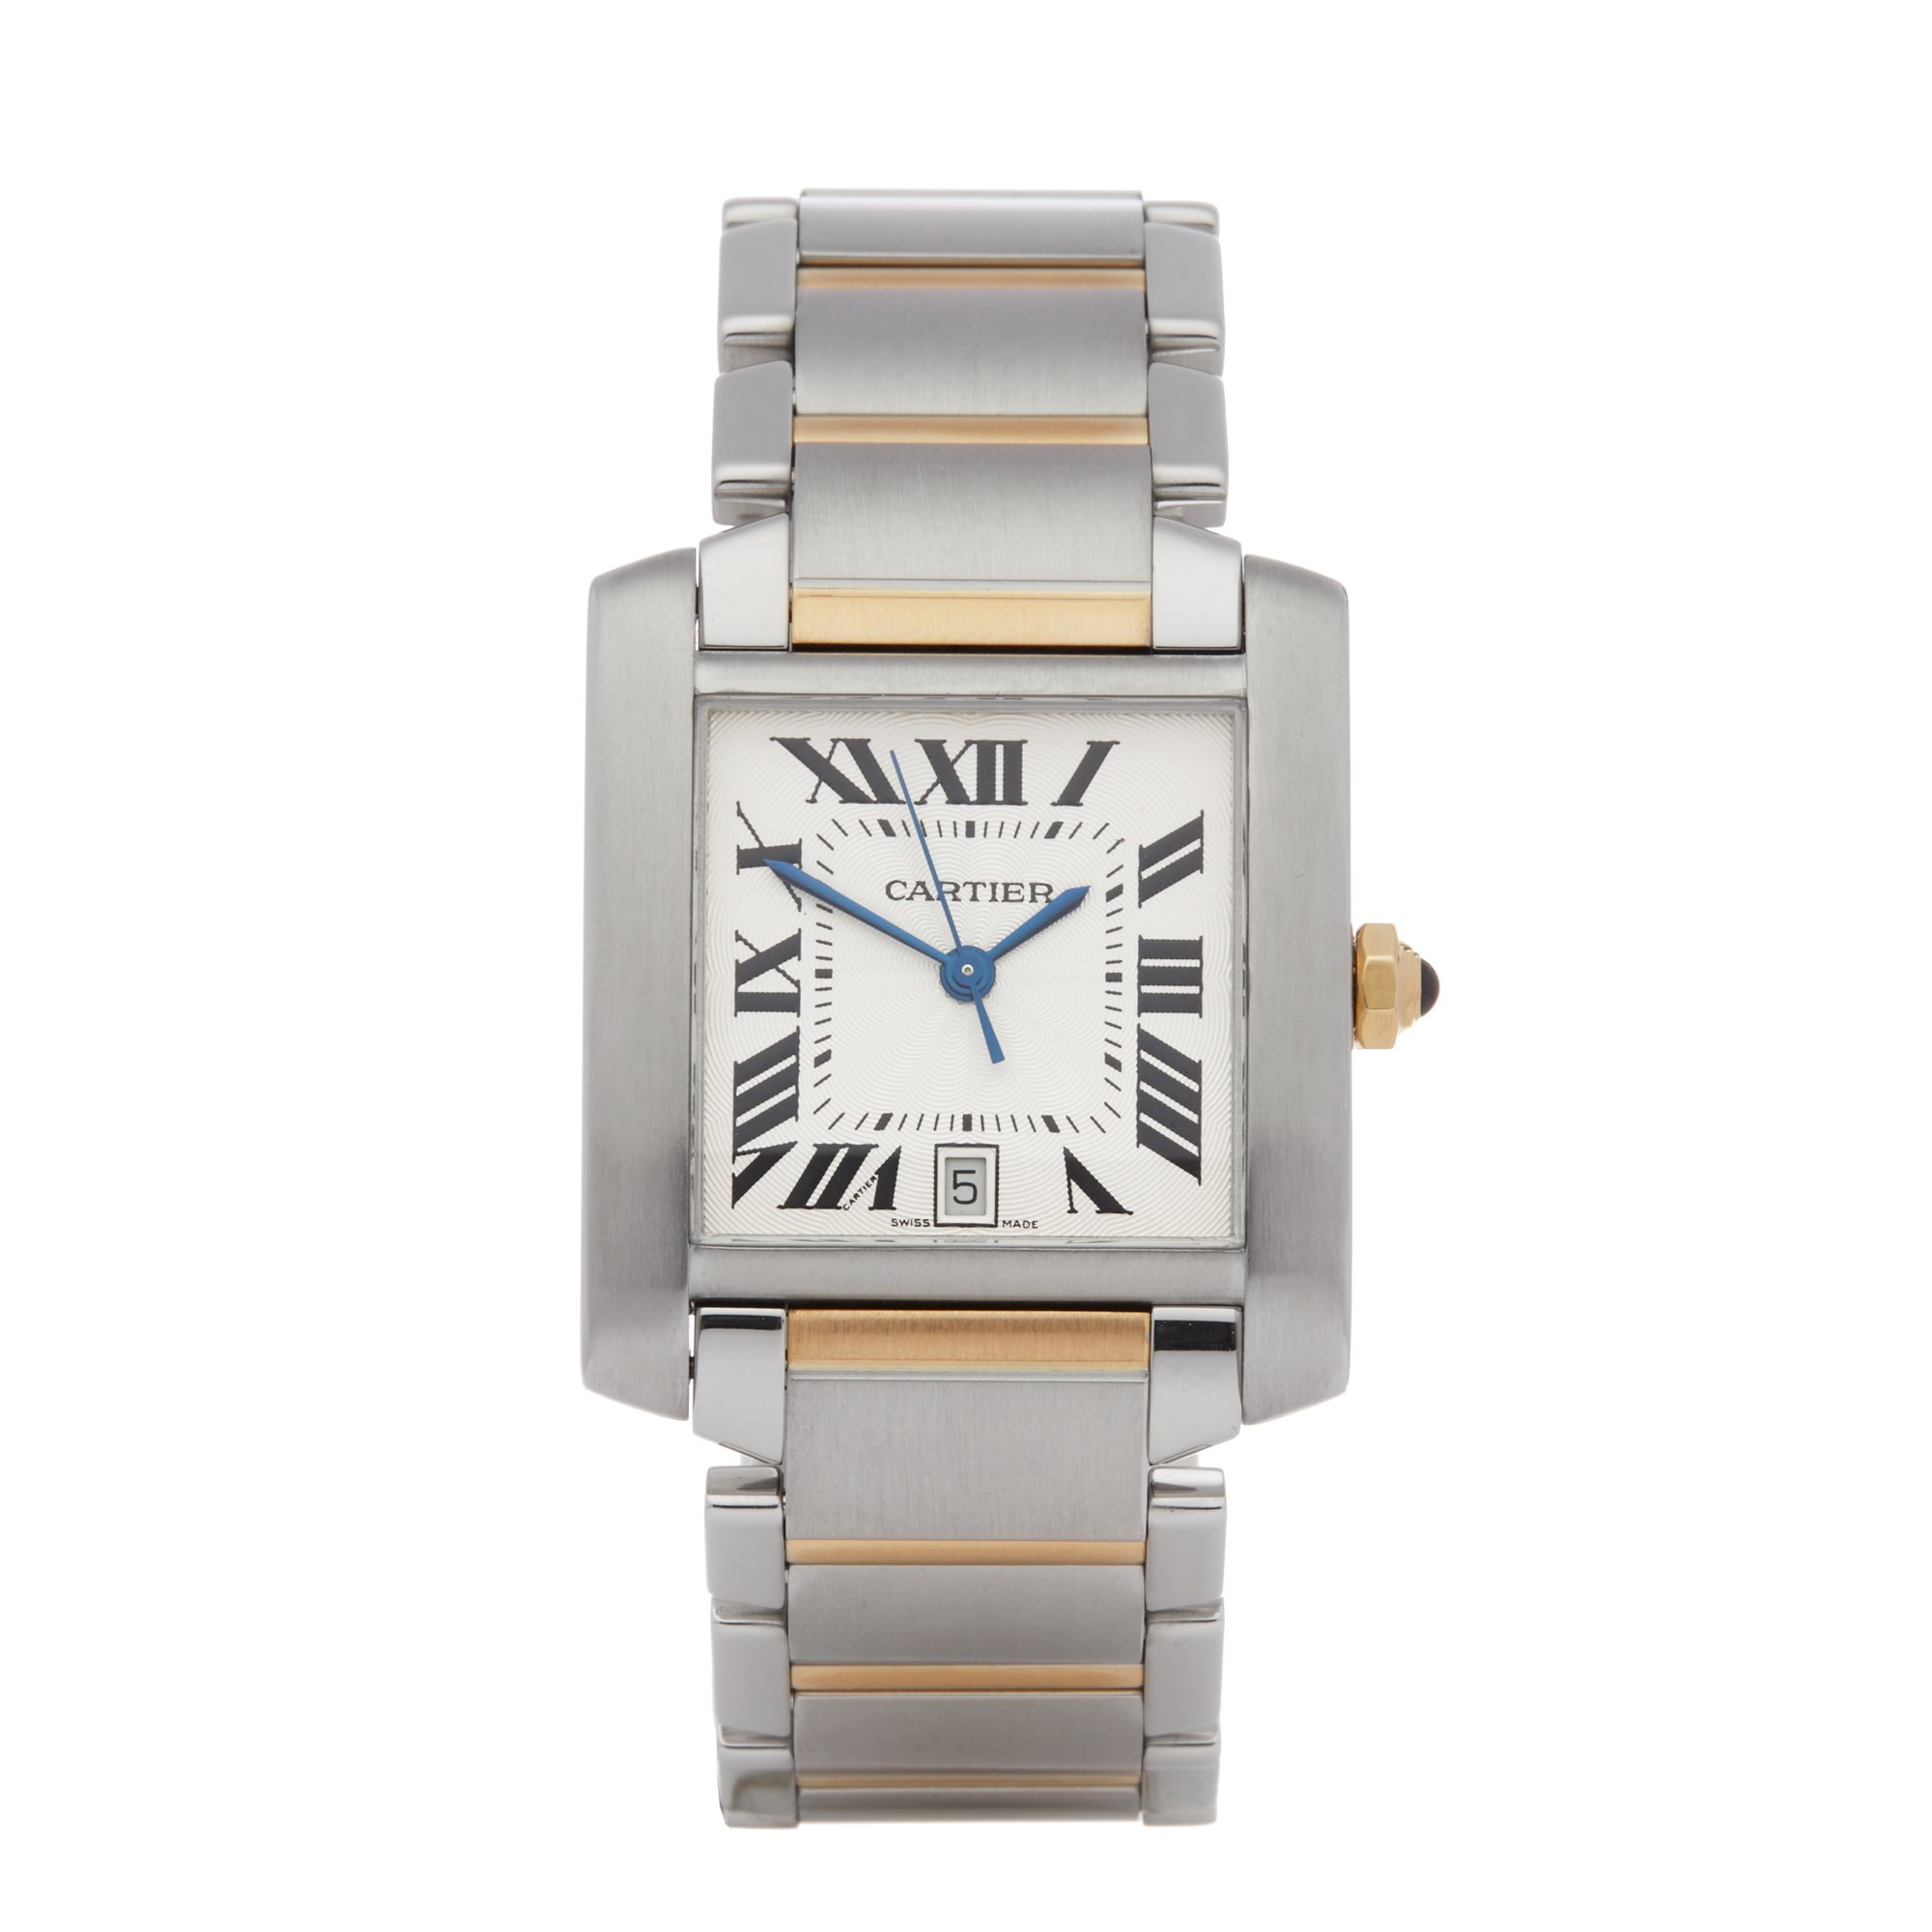 Cartier Tank Francaise Stainless Steel 2302